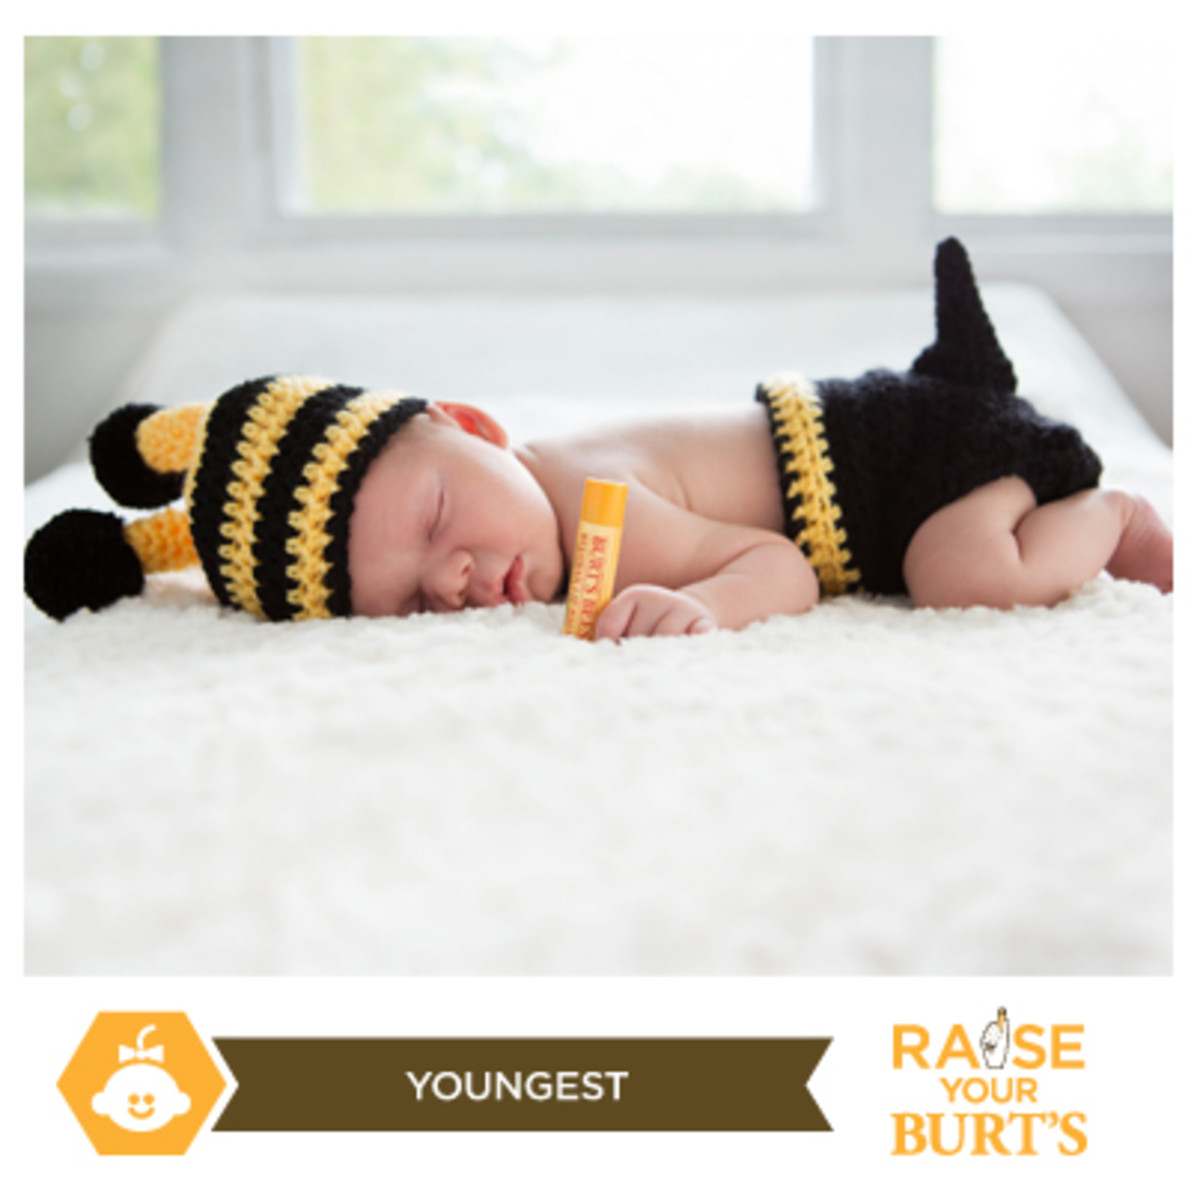 youngest burt's bees fan